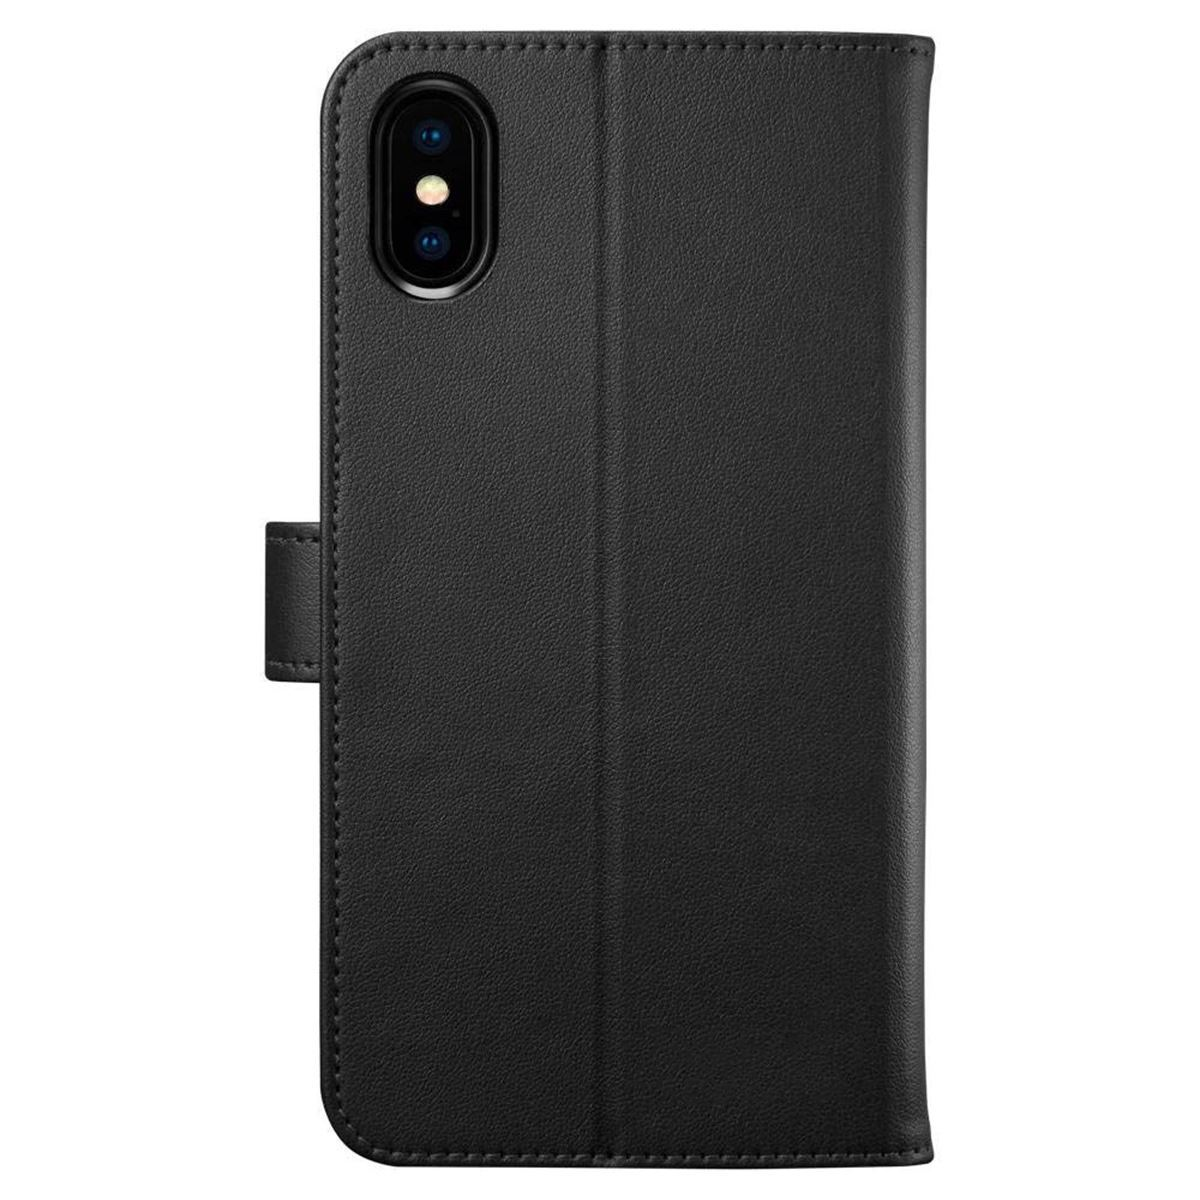 thumbnail 9 - For Apple iPhone 12 11 XR XS Max Leather Flip Wallet Magnetic Stand Card Case